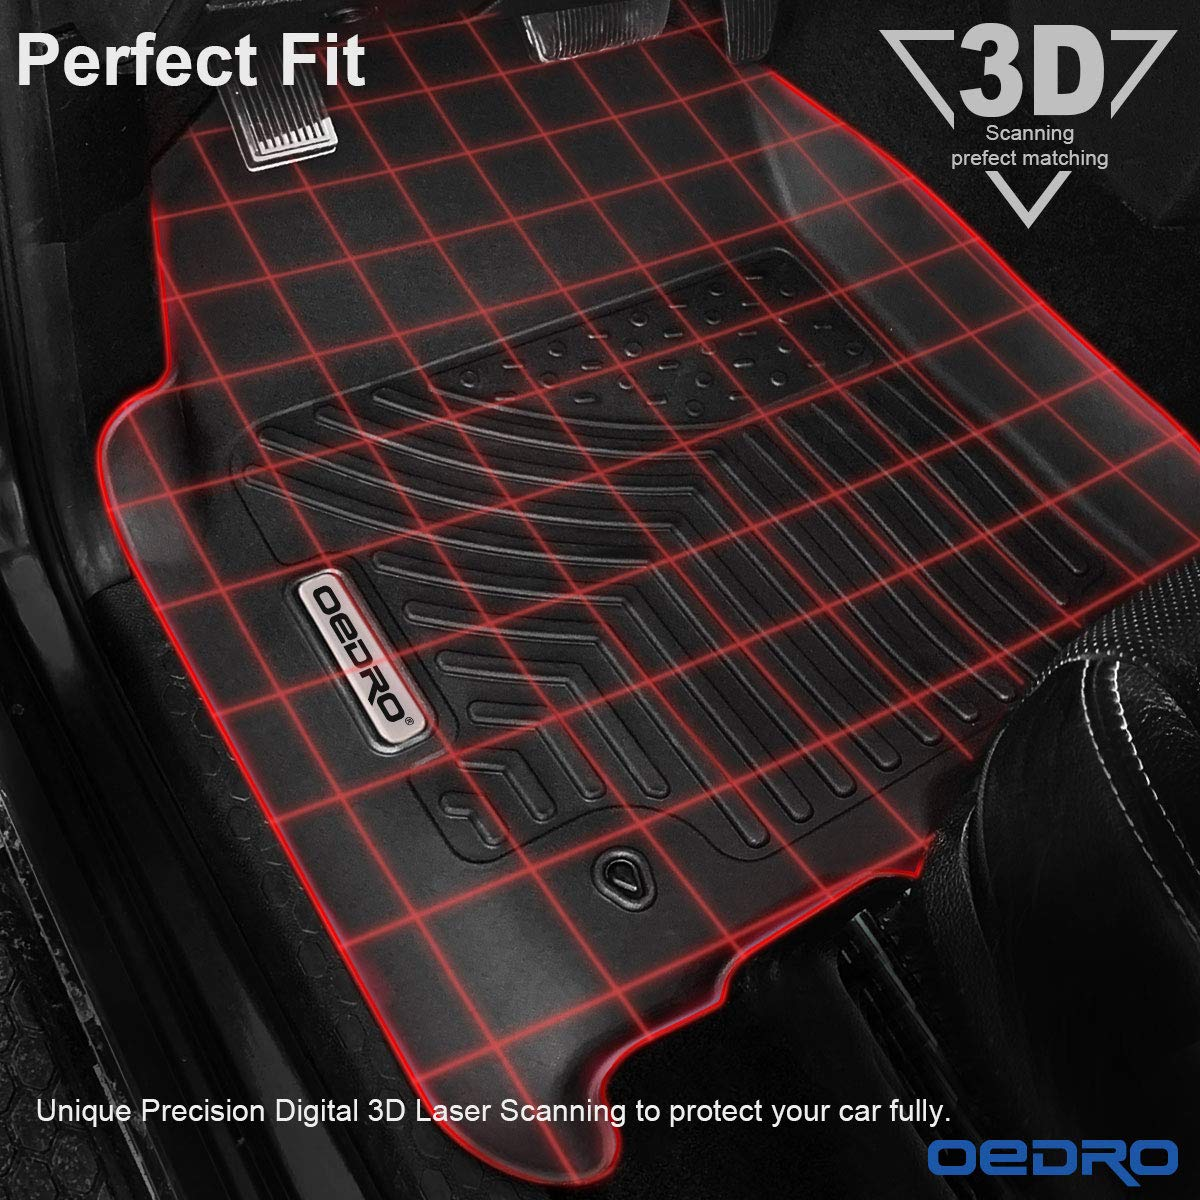 oEdRo Floor Mats Compatible for 2012-2018 Dodge Ram 1500/2500/3500 Crew Cab, Unique Black TPE All-Weather Guard Includes 1st and 2nd Row: Front, Rear, Full Set Liners by oEdRo (Image #3)